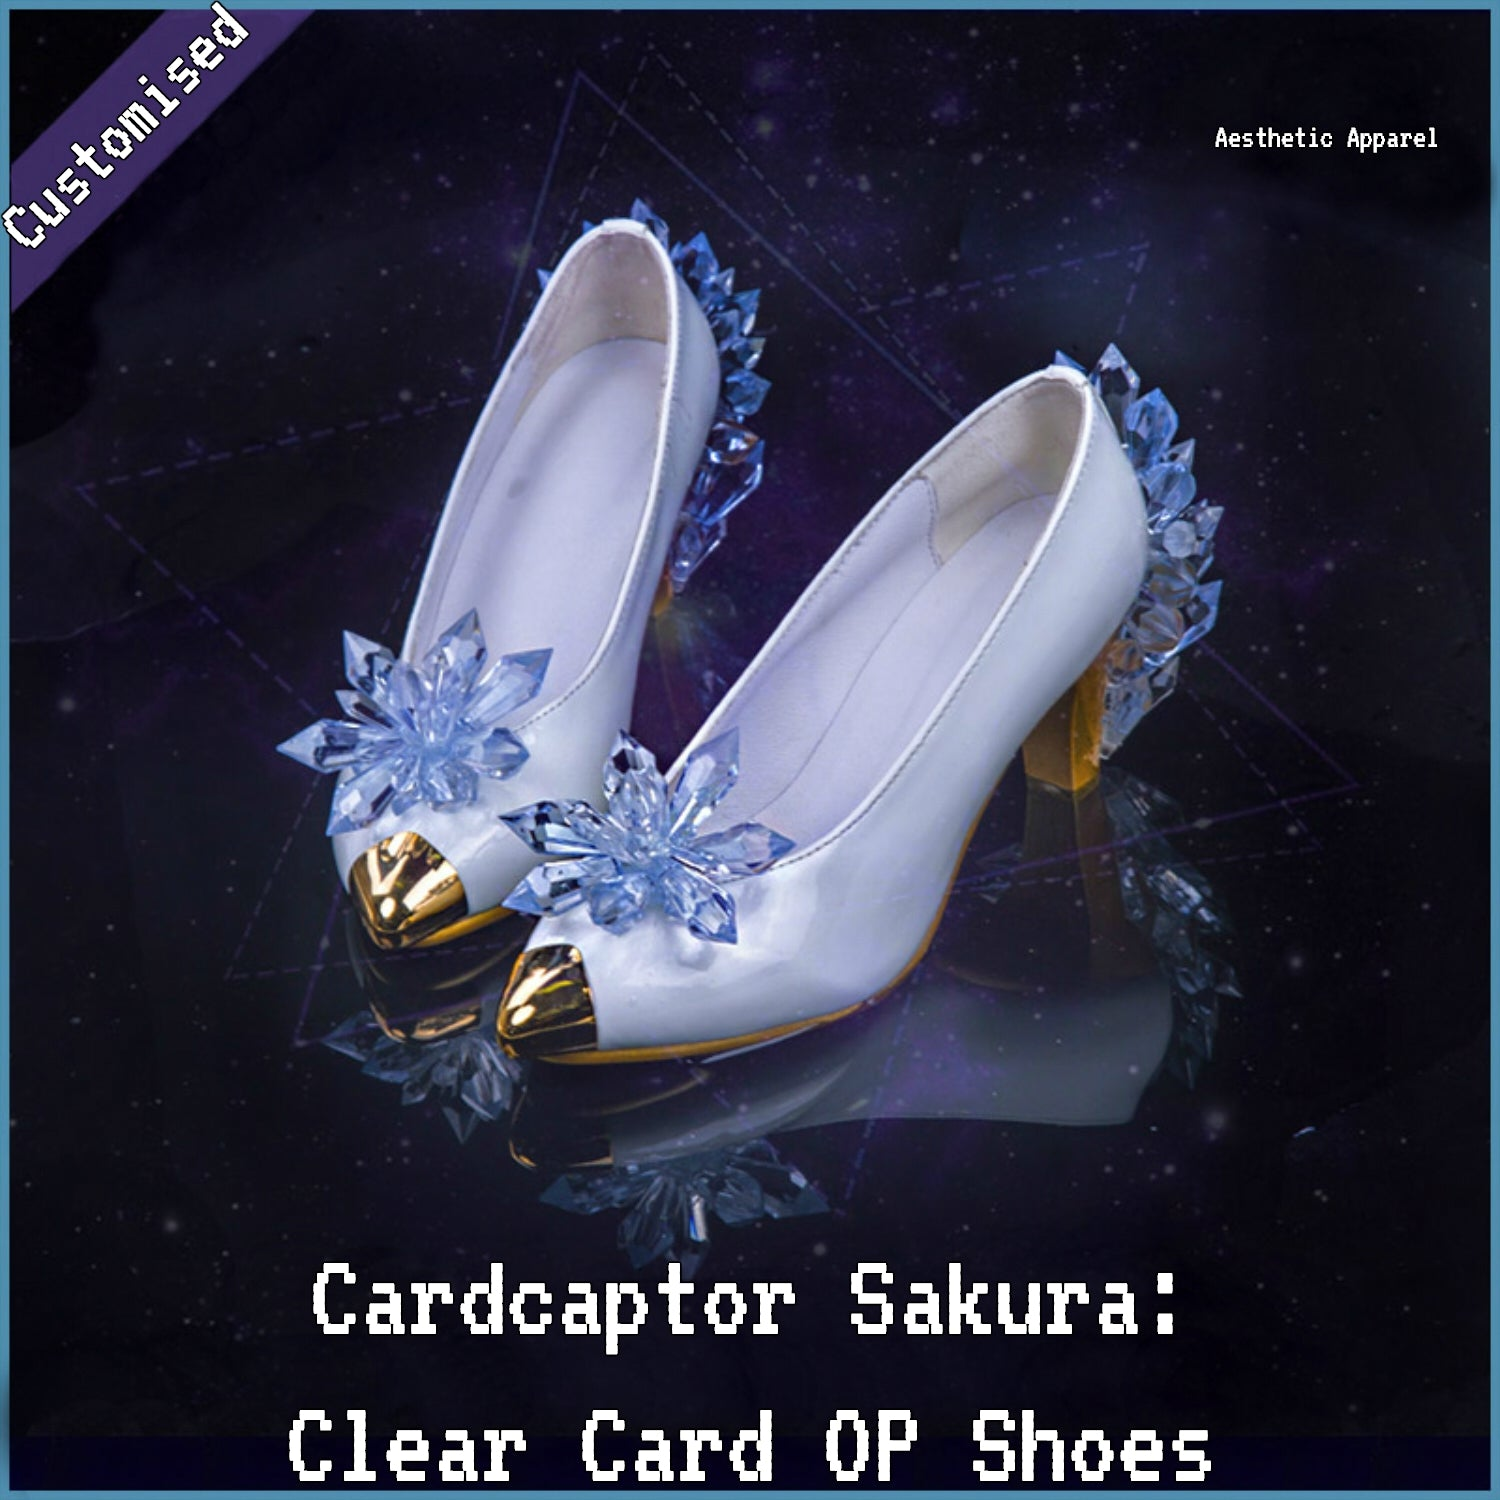 Cardcaptor Sakura: Clear Card-hen OP Cosplay Shoes